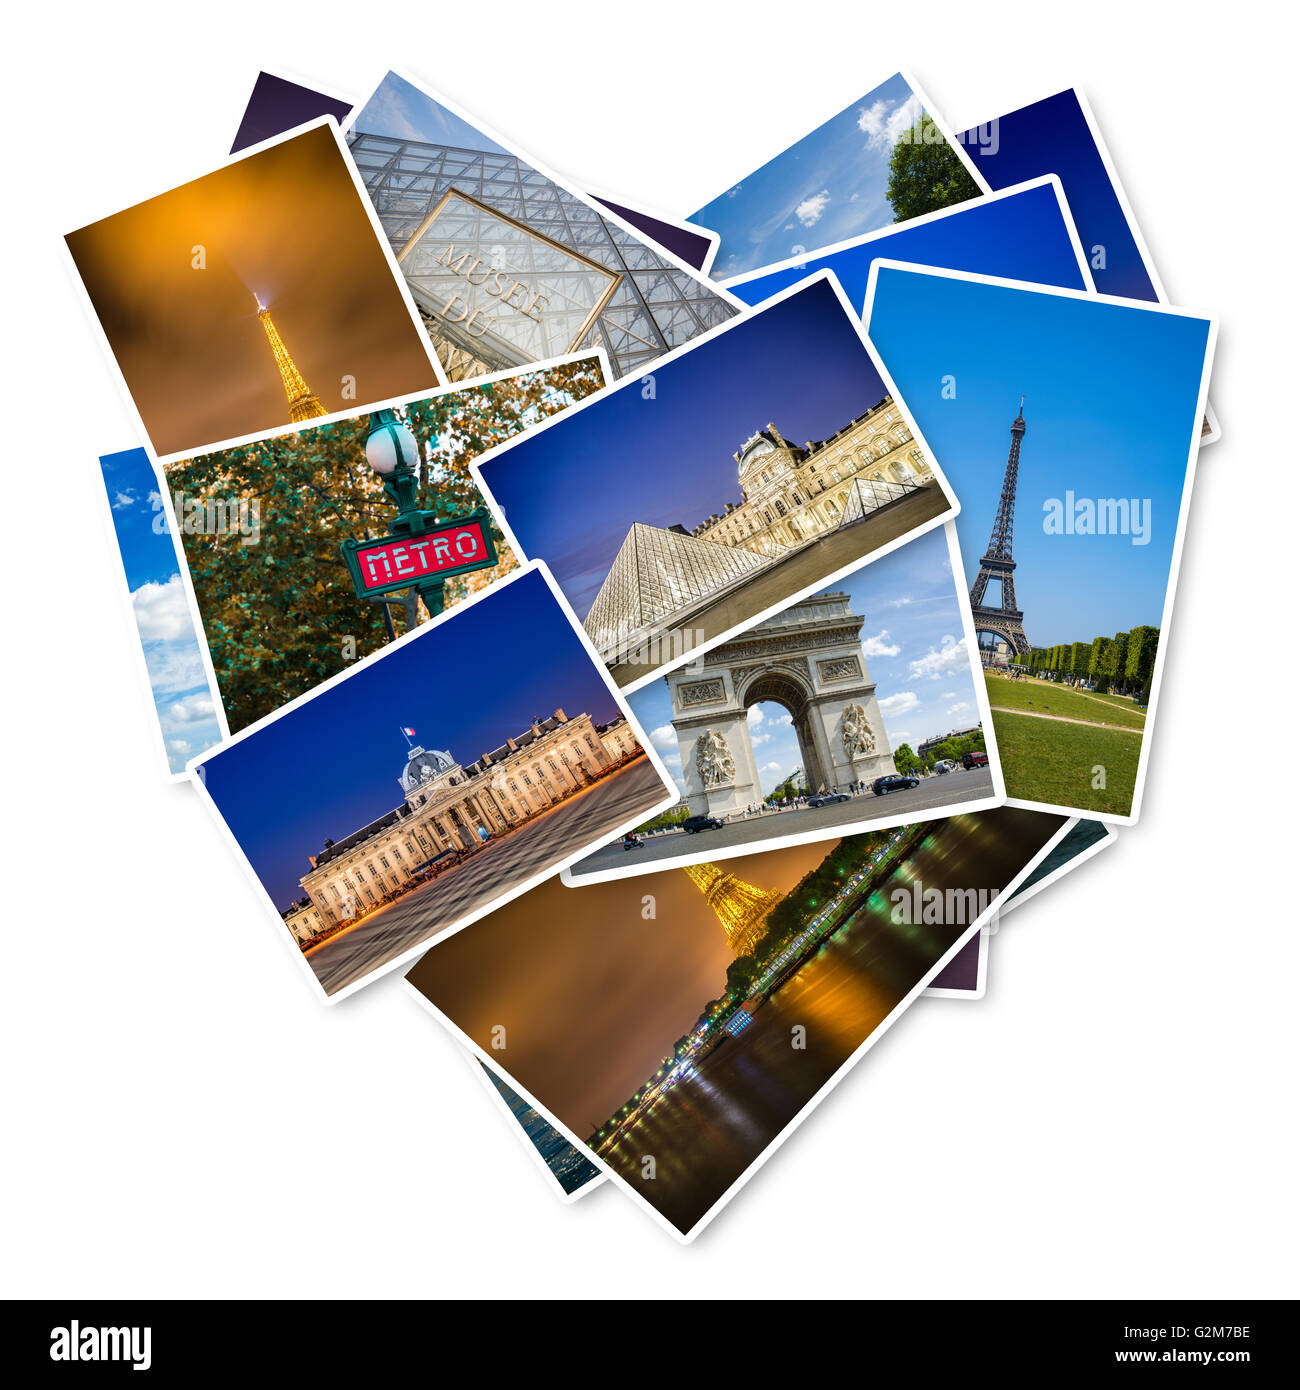 PARIS - JULY 12, 2013: Eiffel Tower on July 12, 2013 in Paris. Eiffel tower is one the most popular attractions - Stock Image